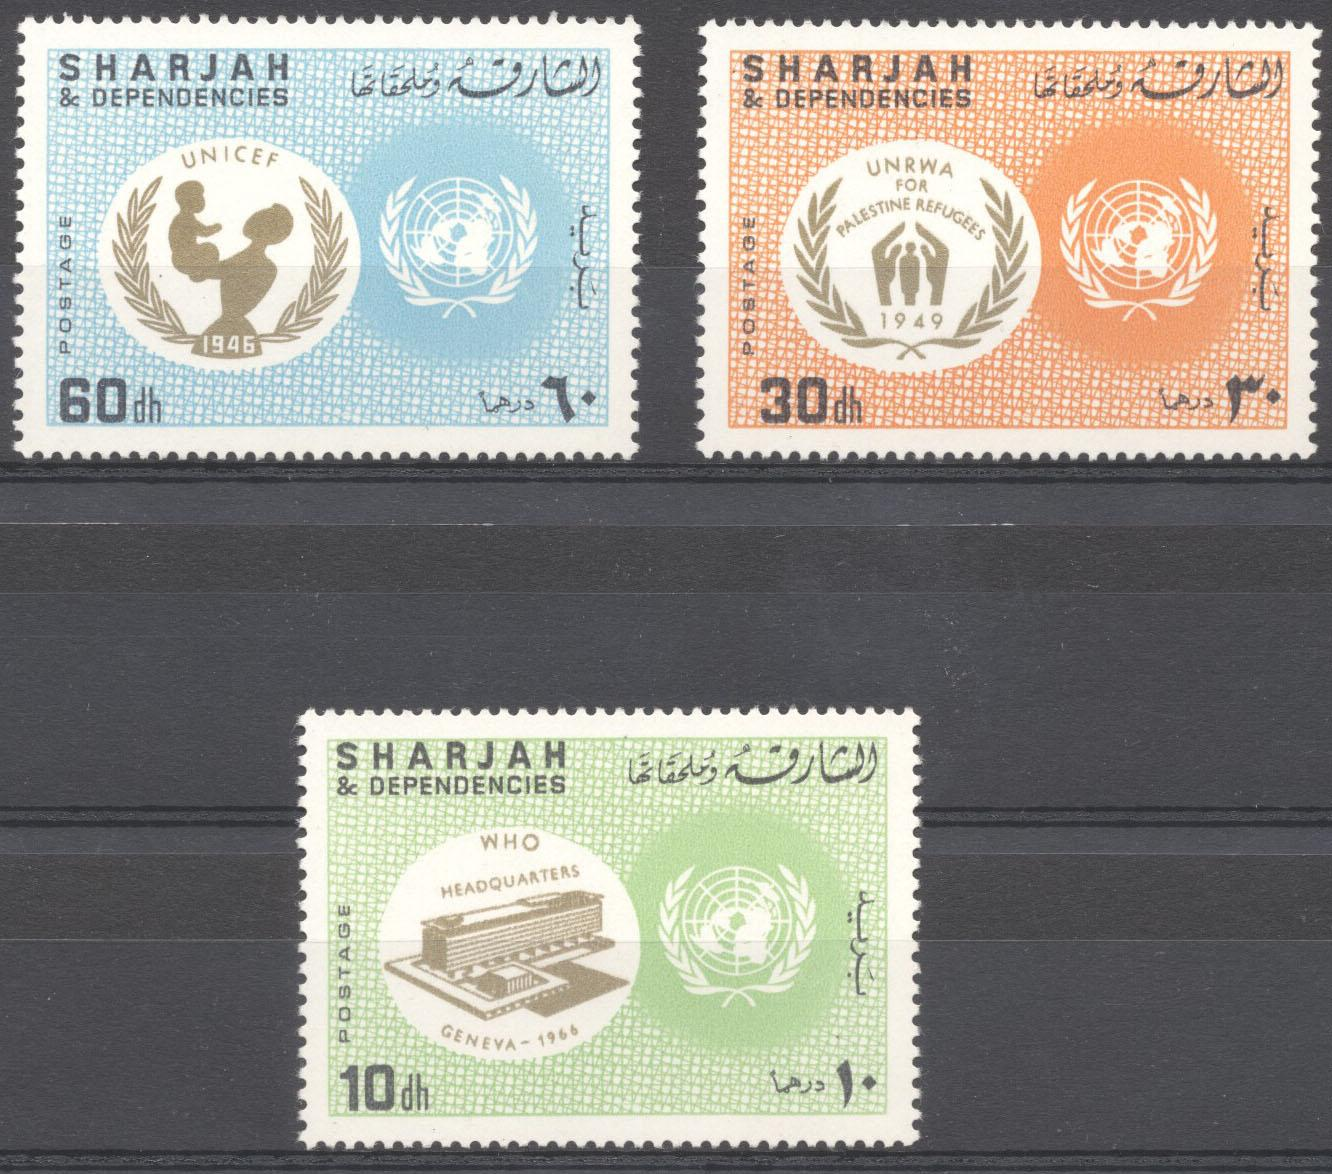 Stamps with UNICEF, WHO from Sharjah (image for product #142433)